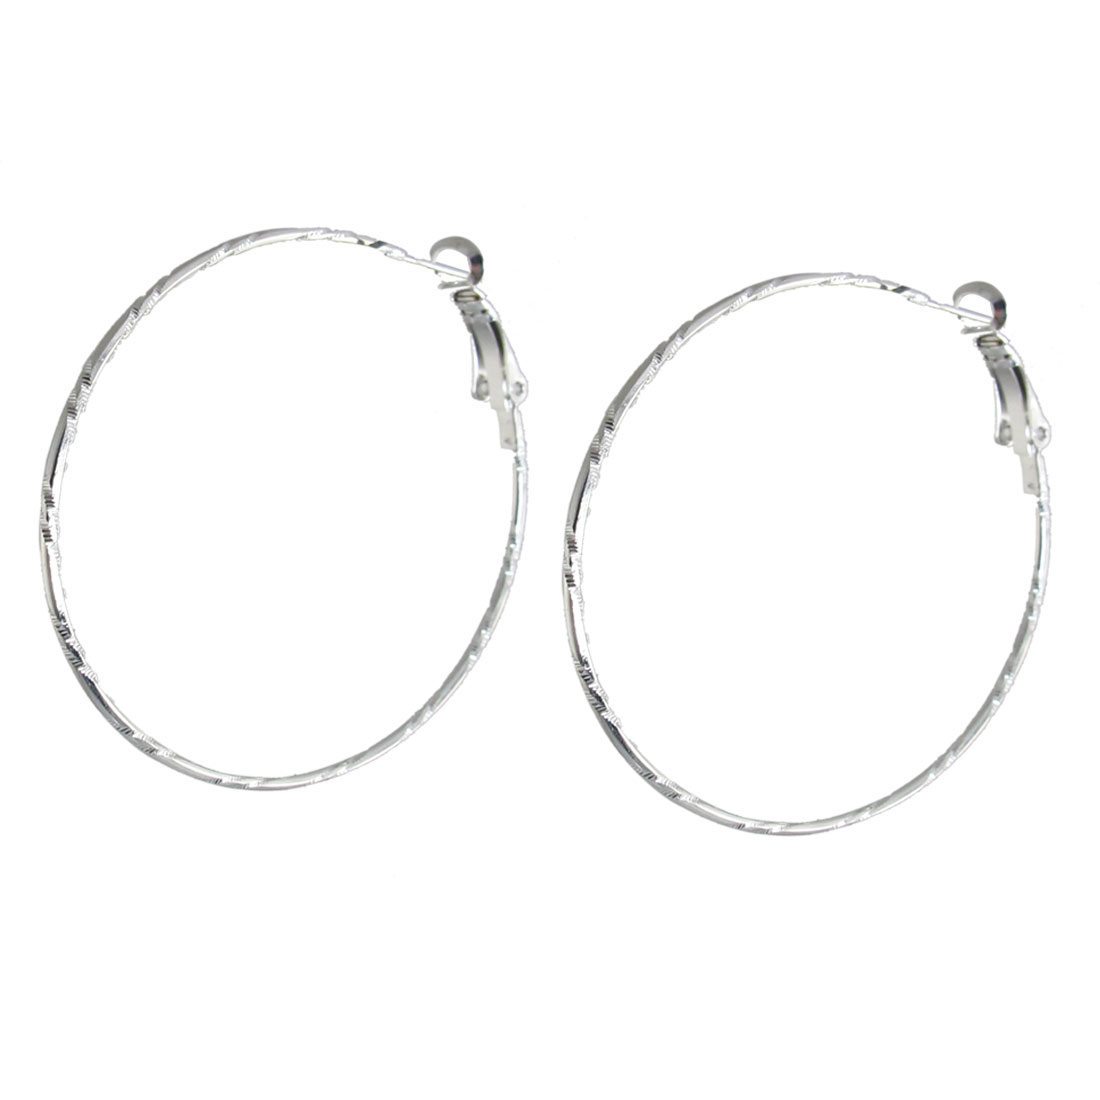 "1.9"" Dia Pair Silver Tone Carved Spring Hoop Earrings for Women"